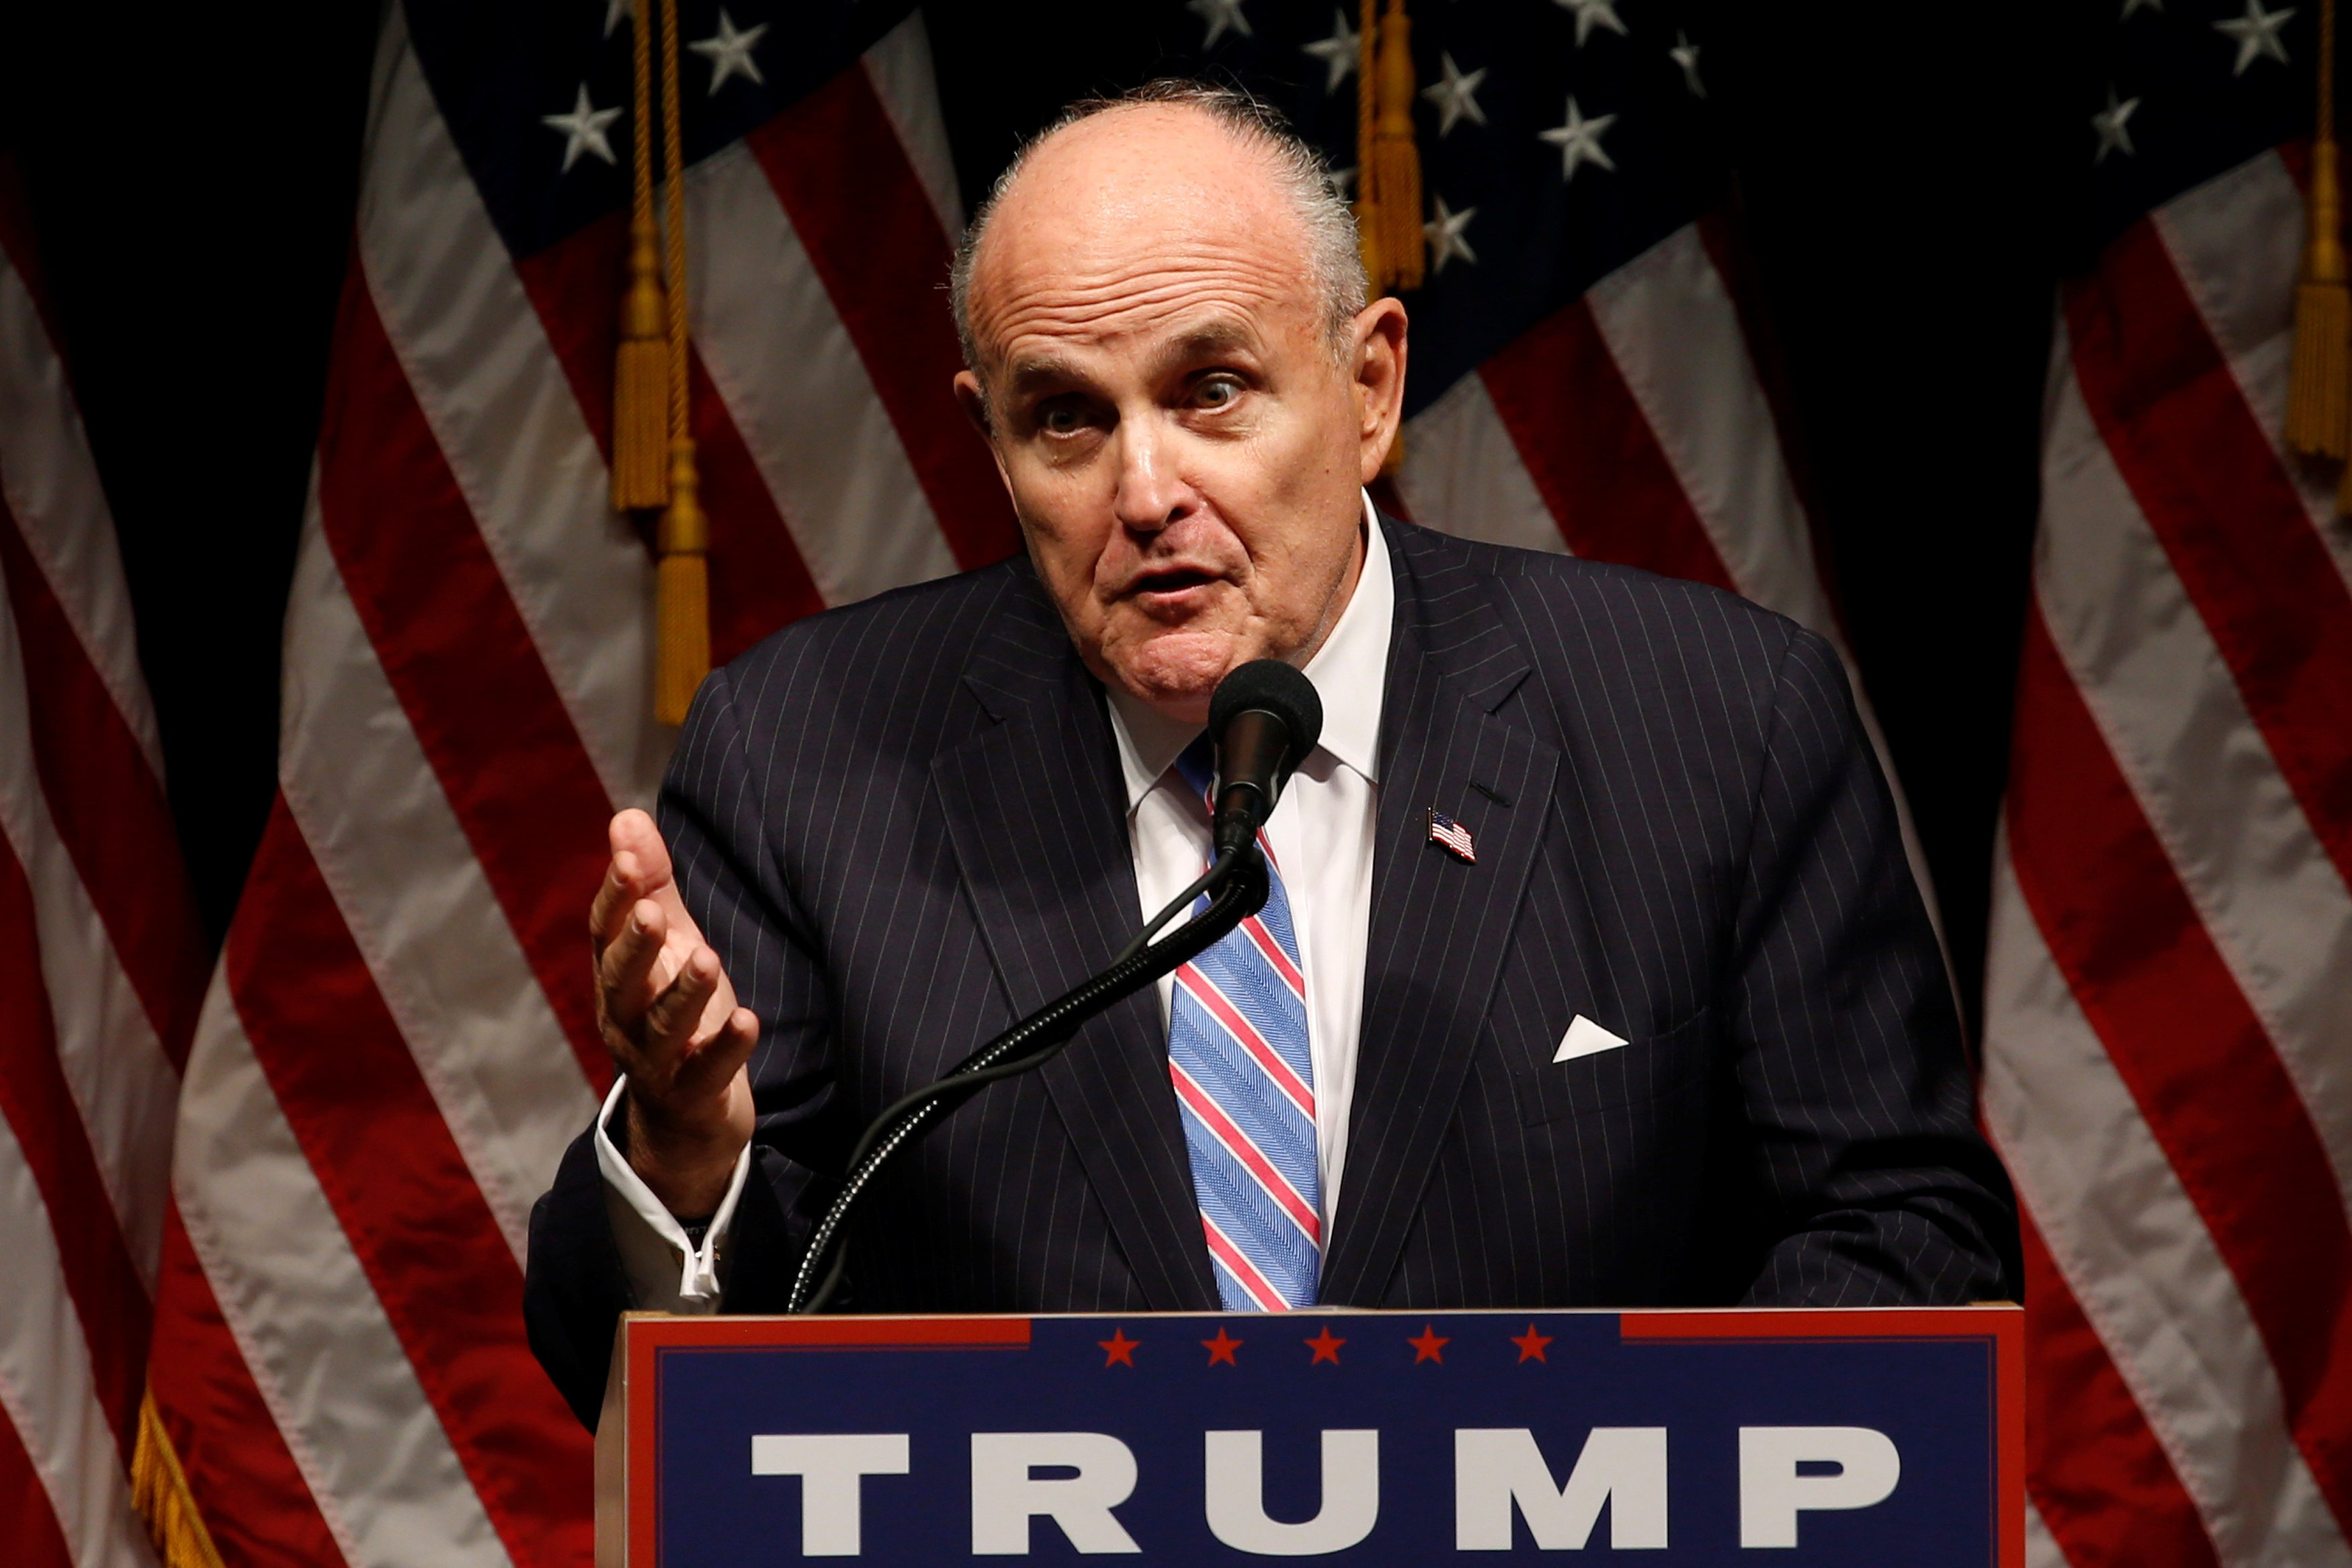 Former NYC Mayor Rudolph Giuliani Out of Running for Trump Cabinet